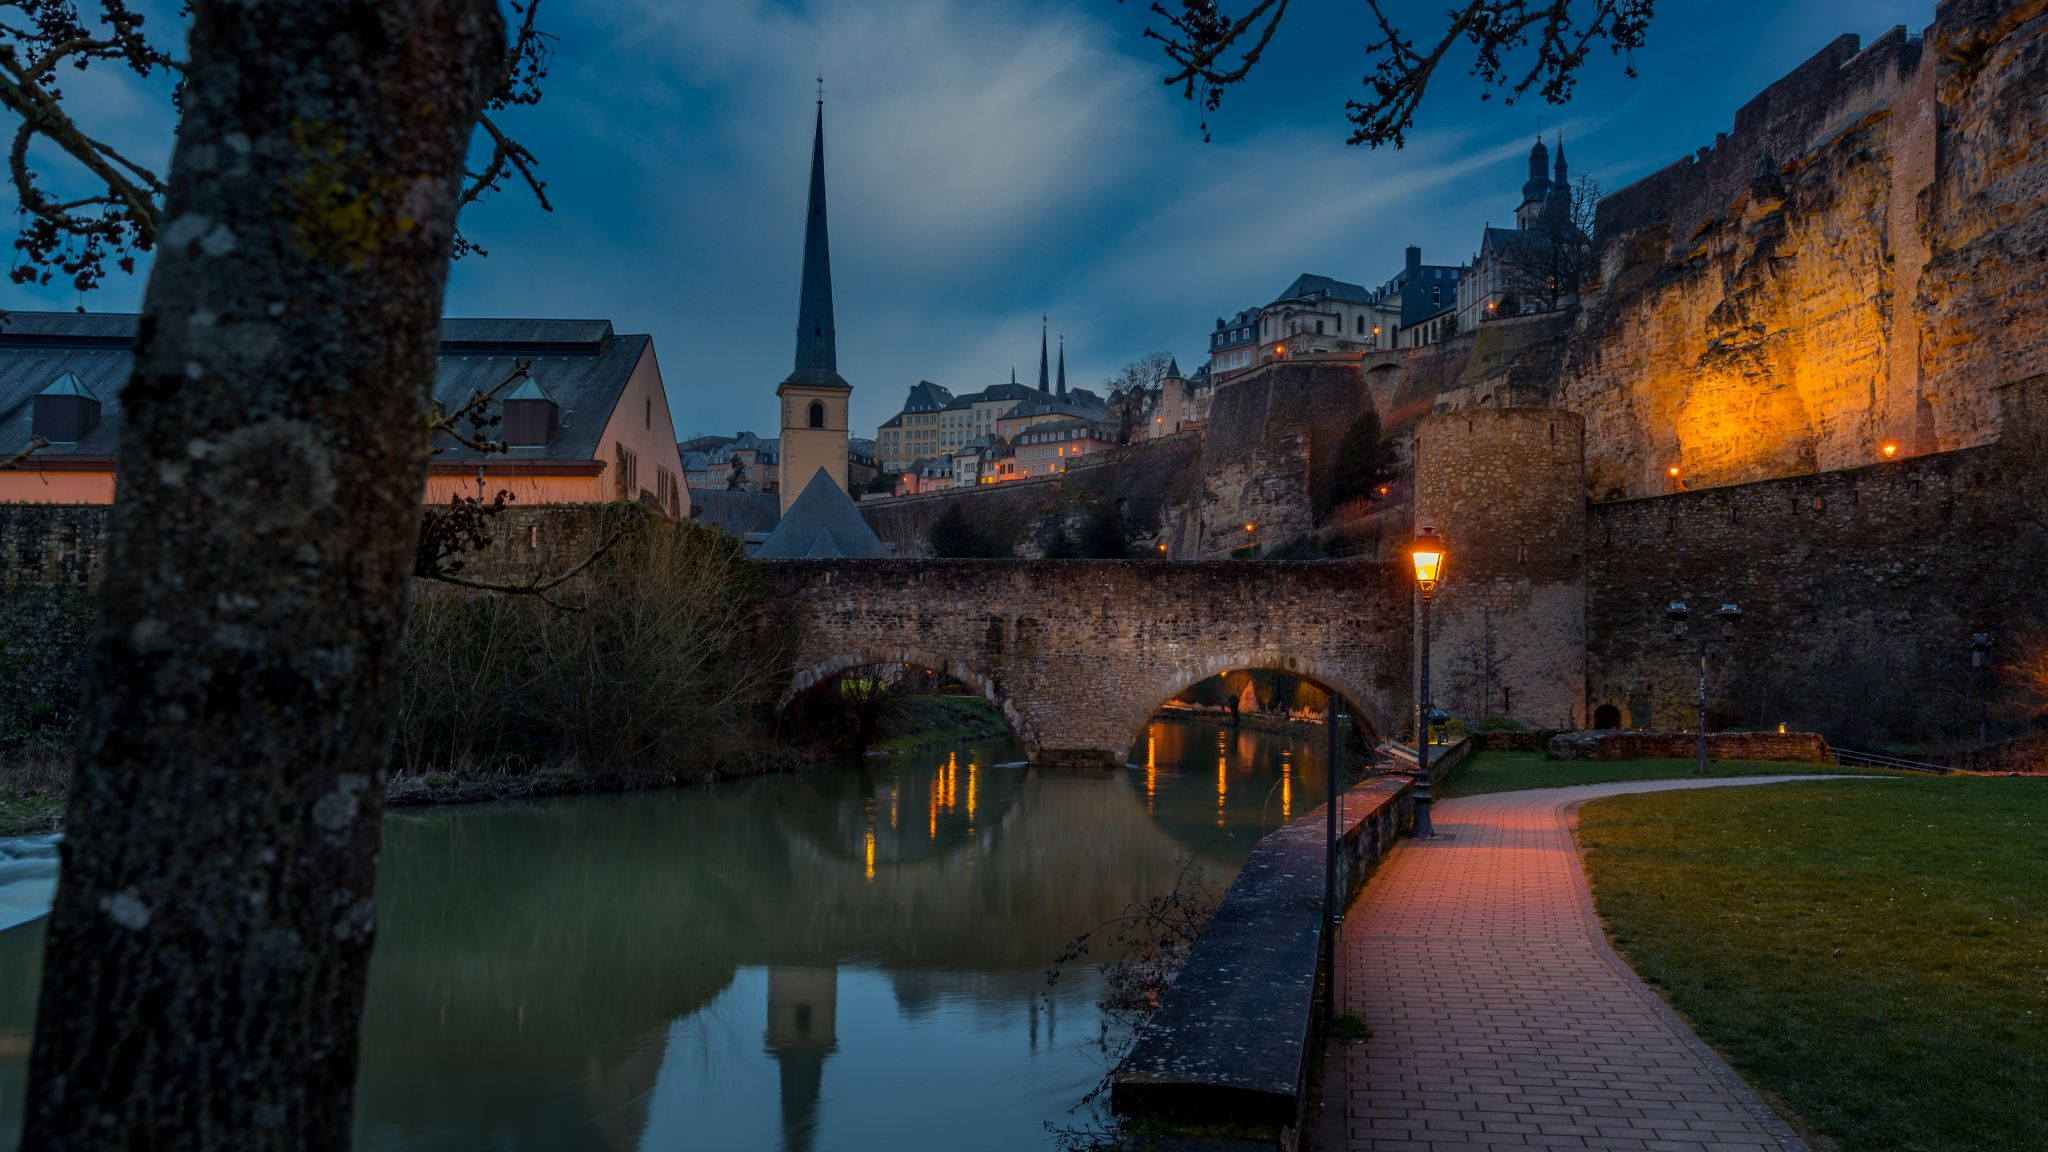 View to Stierchen Bridge and old town of Luxembourg, Luxembourg